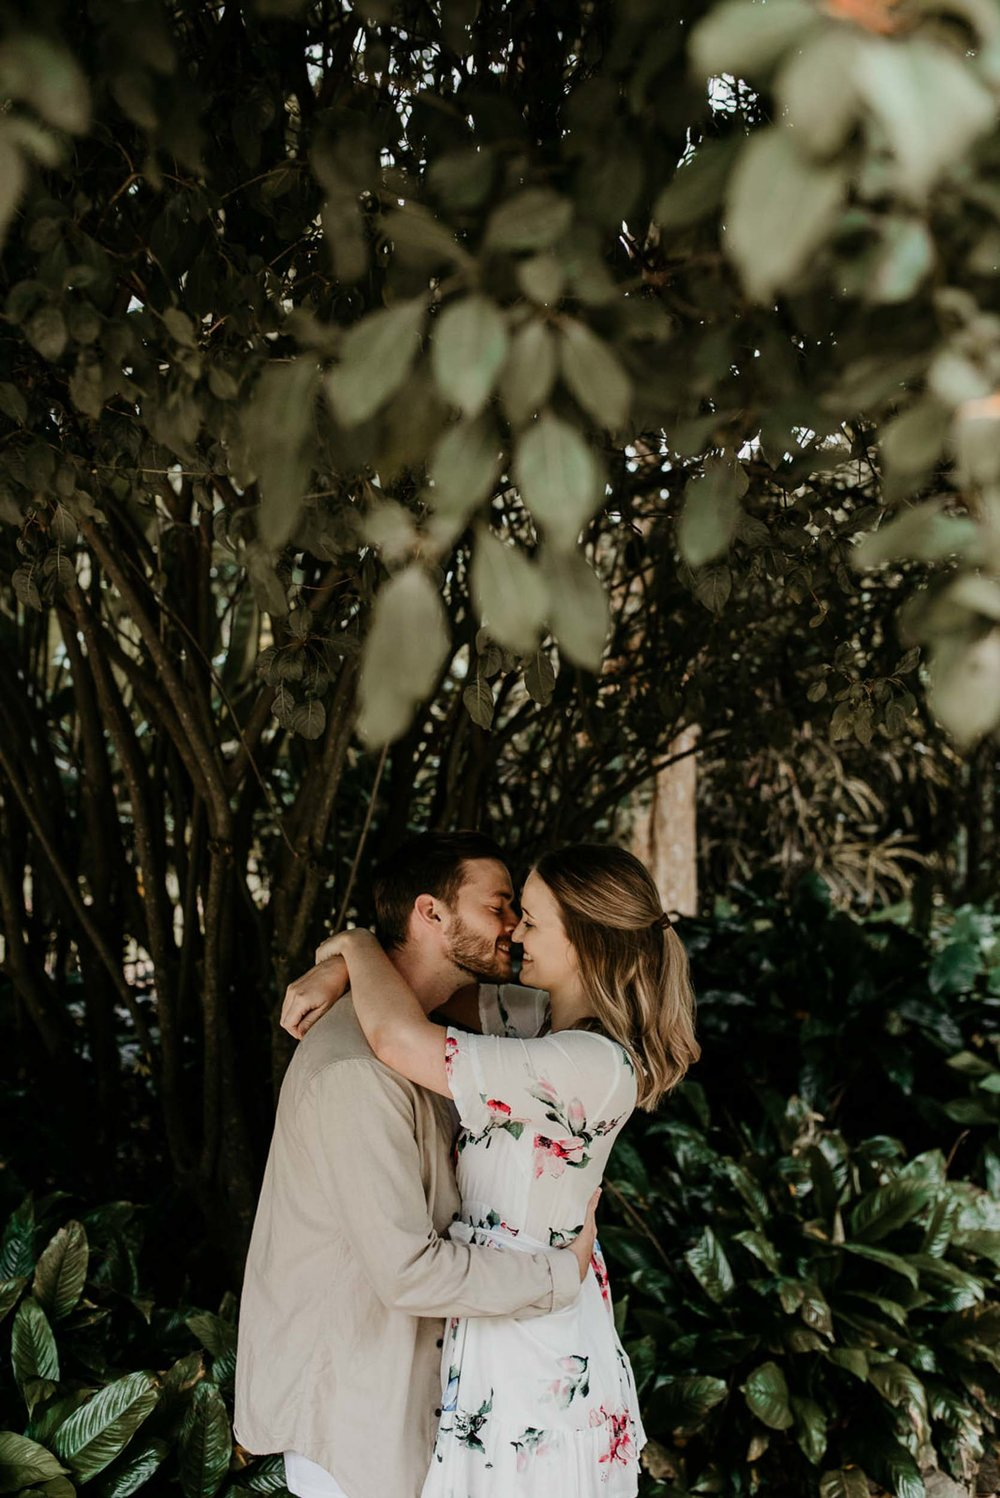 The Raw Photographer - Wedding Photographer - Botanical Gardens Engagement- Couple Session Photos in Cairns - Engaged Price - Rainforest Queensland - photoshoot-2.jpg